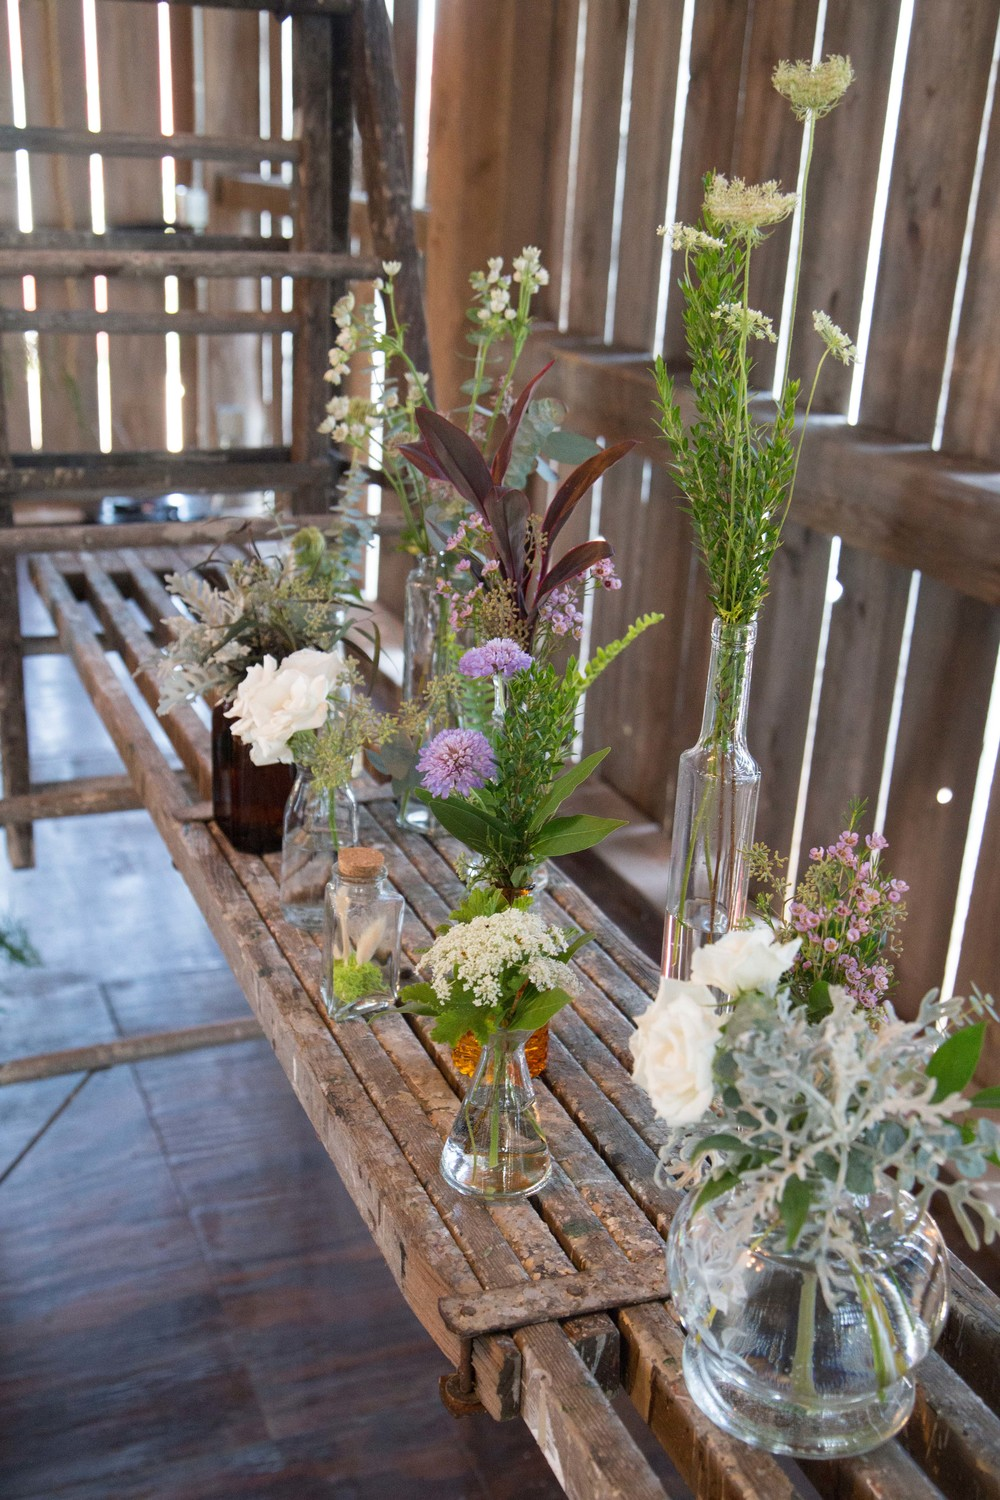 8_22-Barn_Altar_Ladder_Decor_5917 2.jpg